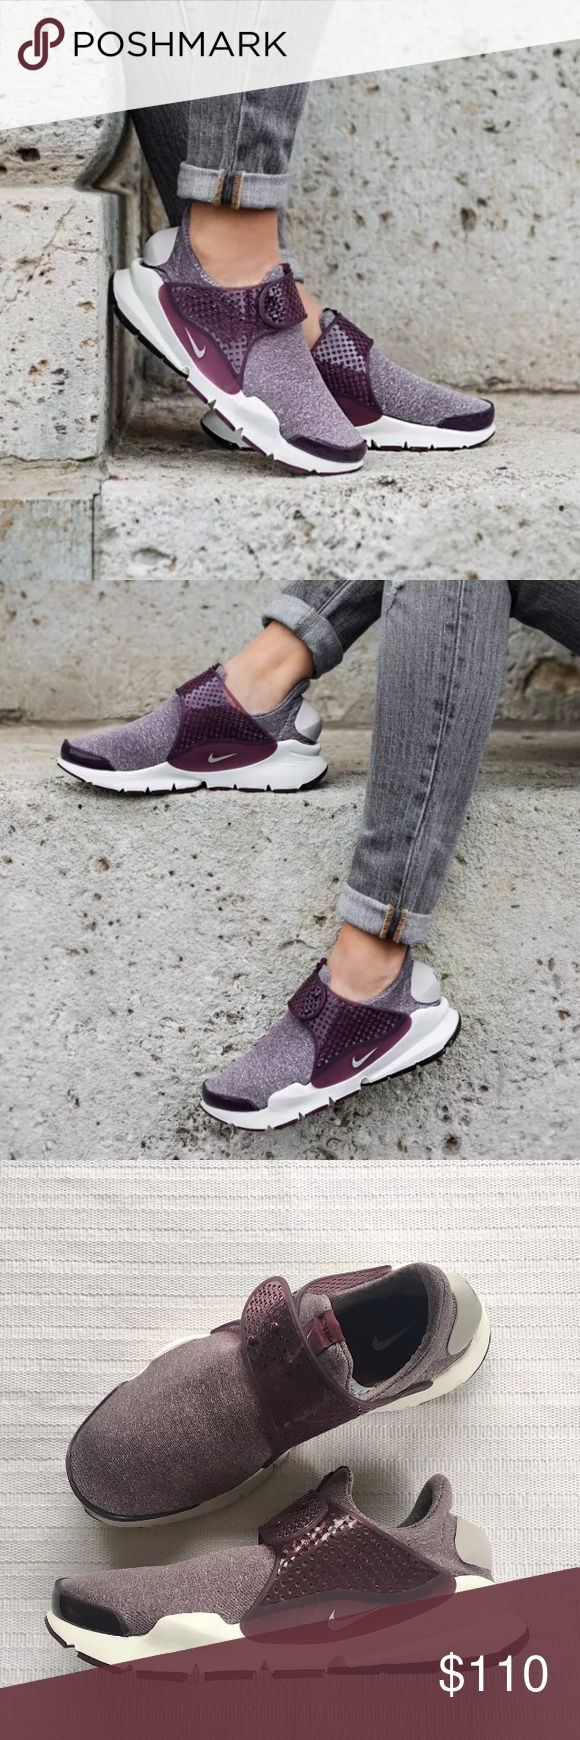 Women's Nike Sock Dart SE Low Running Sneakers Women's Nike Sock Dart SE Low Running Sneakers takes a minimalist approach with a stretchy knit upper designed for a comfortable feel and a streamlined look. Style/Color: 862412-600  * Women's size 7  * NEW in box (no lid) * No trades * 100% authentic Nike Shoes Sneakers